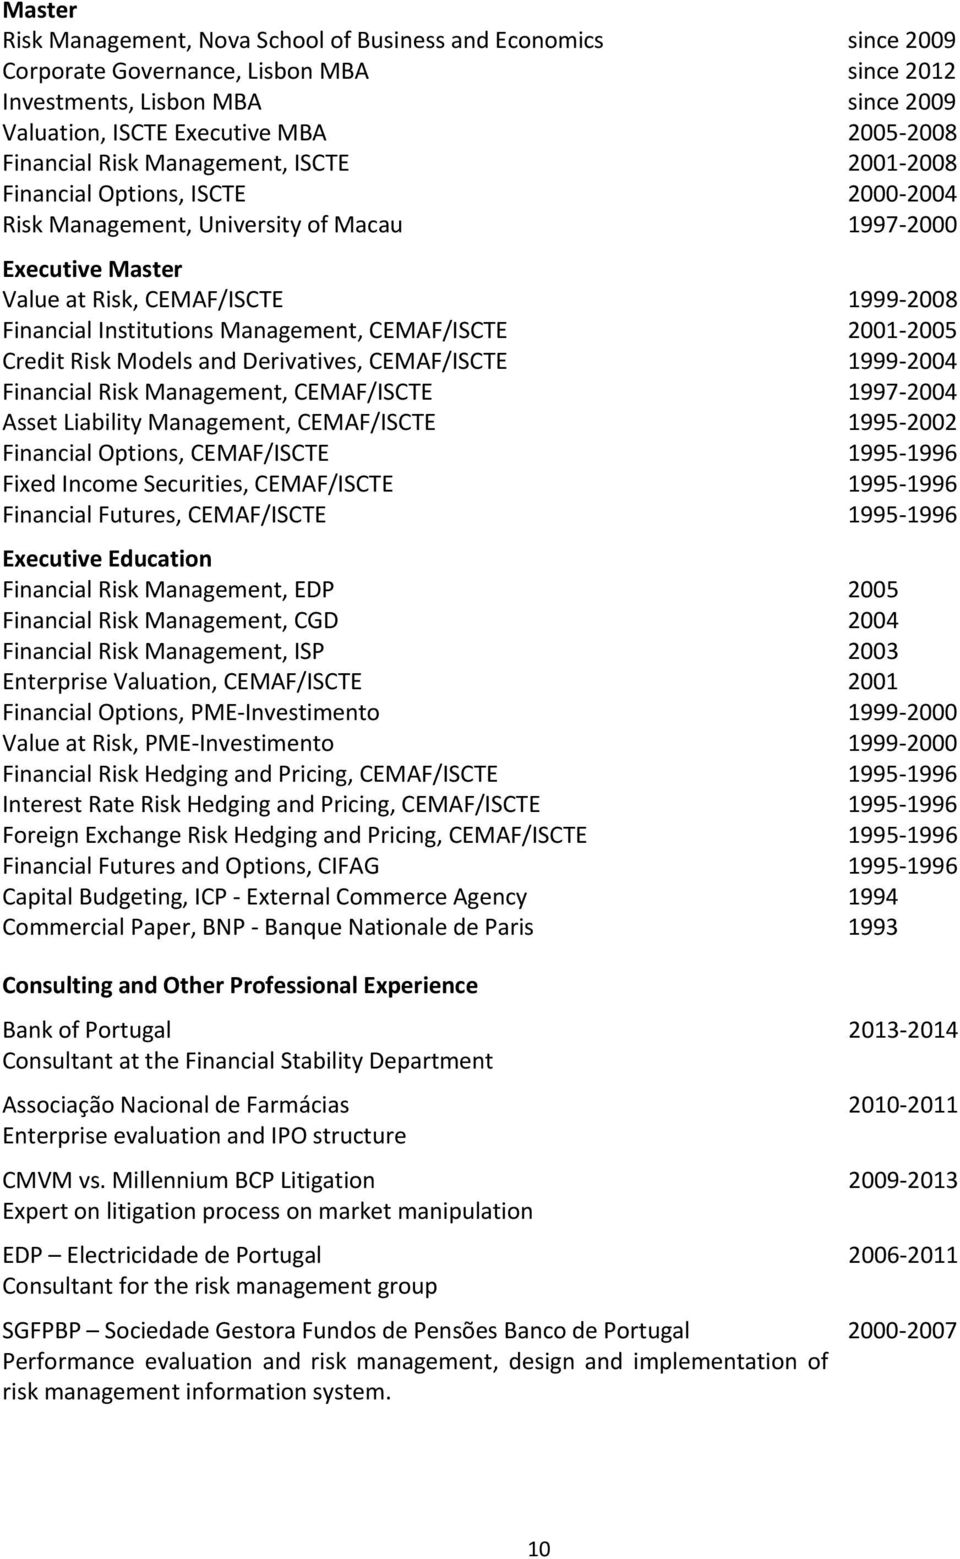 Institutions Management, CEMAF/ISCTE 2001 2005 Credit Risk Models and Derivatives, CEMAF/ISCTE 1999 2004 Financial Risk Management, CEMAF/ISCTE 1997 2004 Asset Liability Management, CEMAF/ISCTE 1995